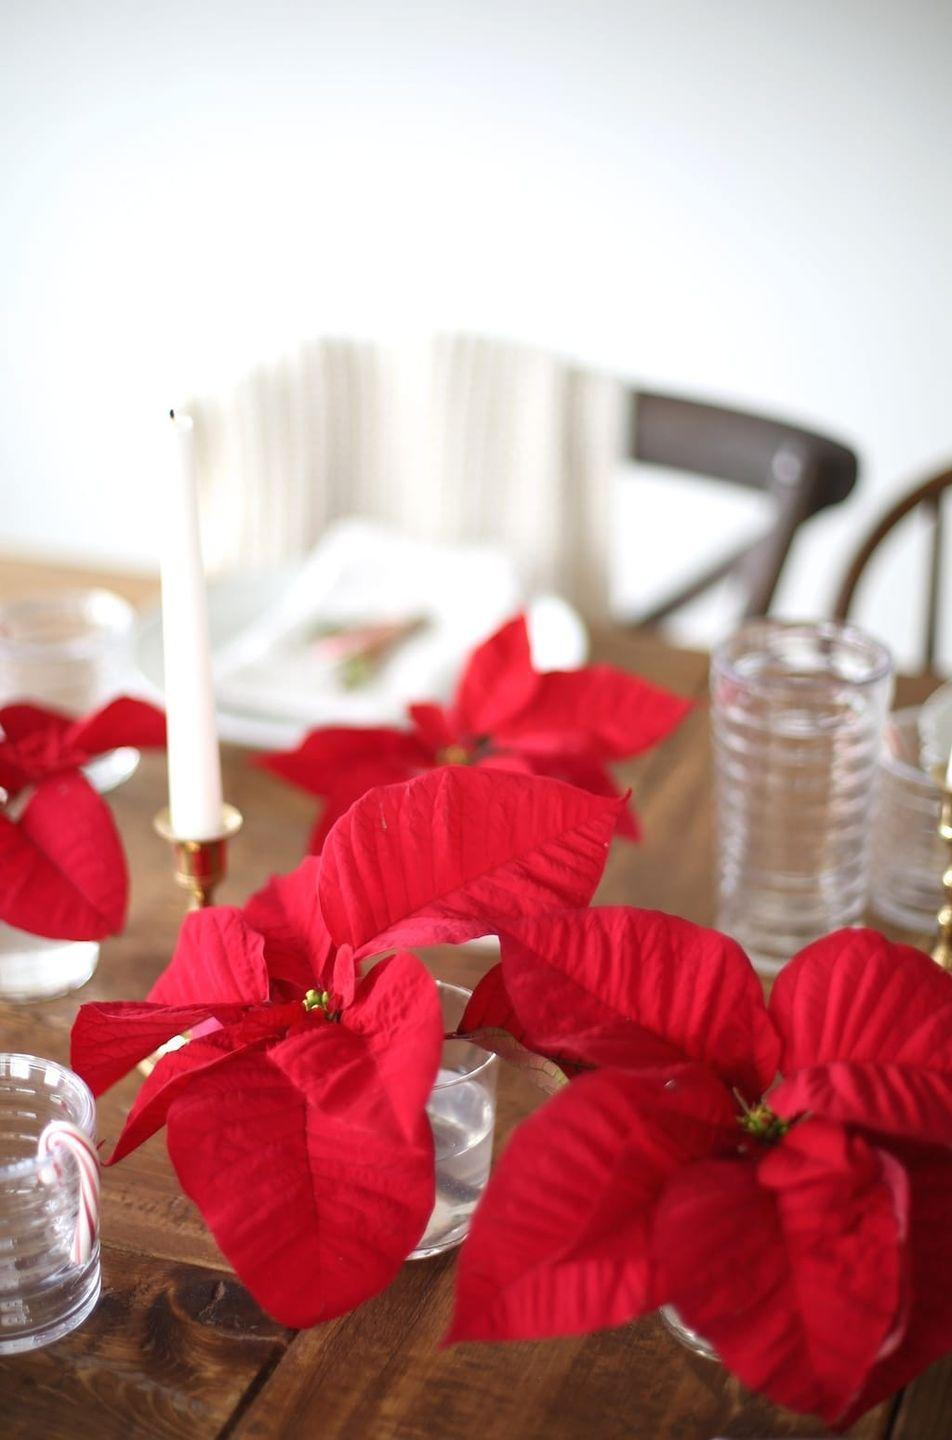 "<p>Looking for a striking centerpiece for a small or rustic wedding? Snip off single flowers from a poinsettia plant, and place in decorative vases to line the center of the table. One plant yields lots of blooms, so you won't break the bank on your floral budget. </p><p><strong>See more at <a href=""https://julieblanner.com/poinsettia-centerpiece/"" rel=""nofollow noopener"" target=""_blank"" data-ylk=""slk:Julie Blanner"" class=""link rapid-noclick-resp"">Julie Blanner</a>.</strong></p>"